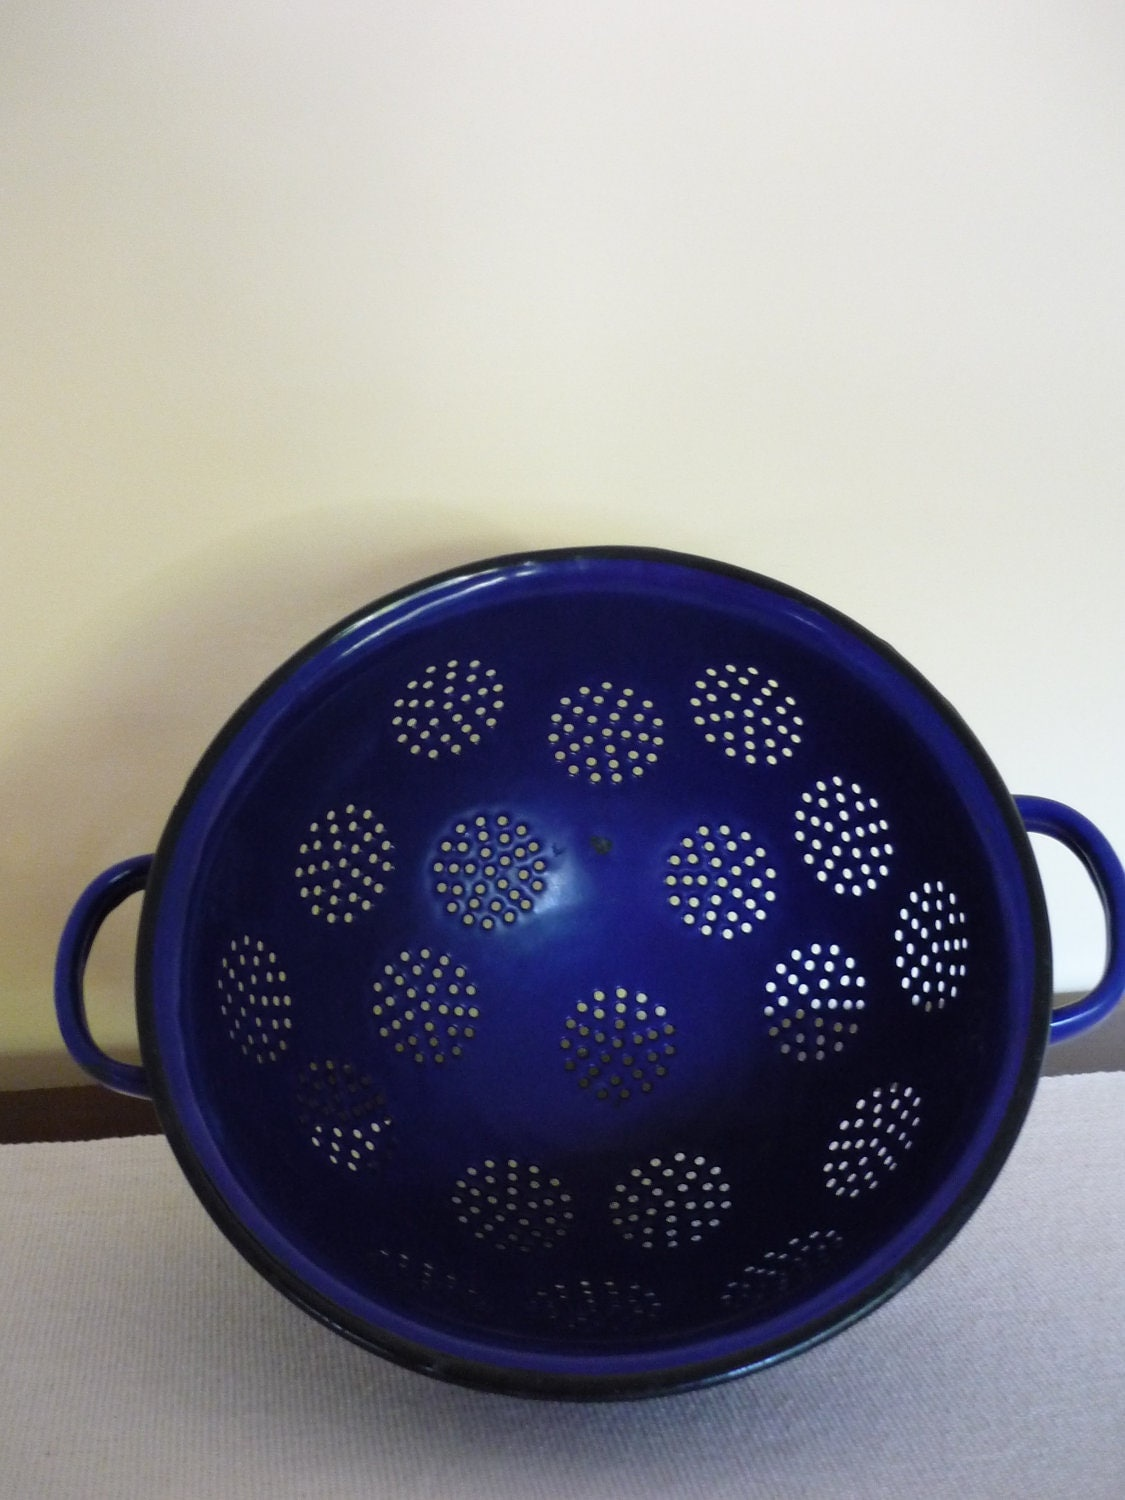 Vintage French Enamel Colander Cobalt Blue Kitchen Decor